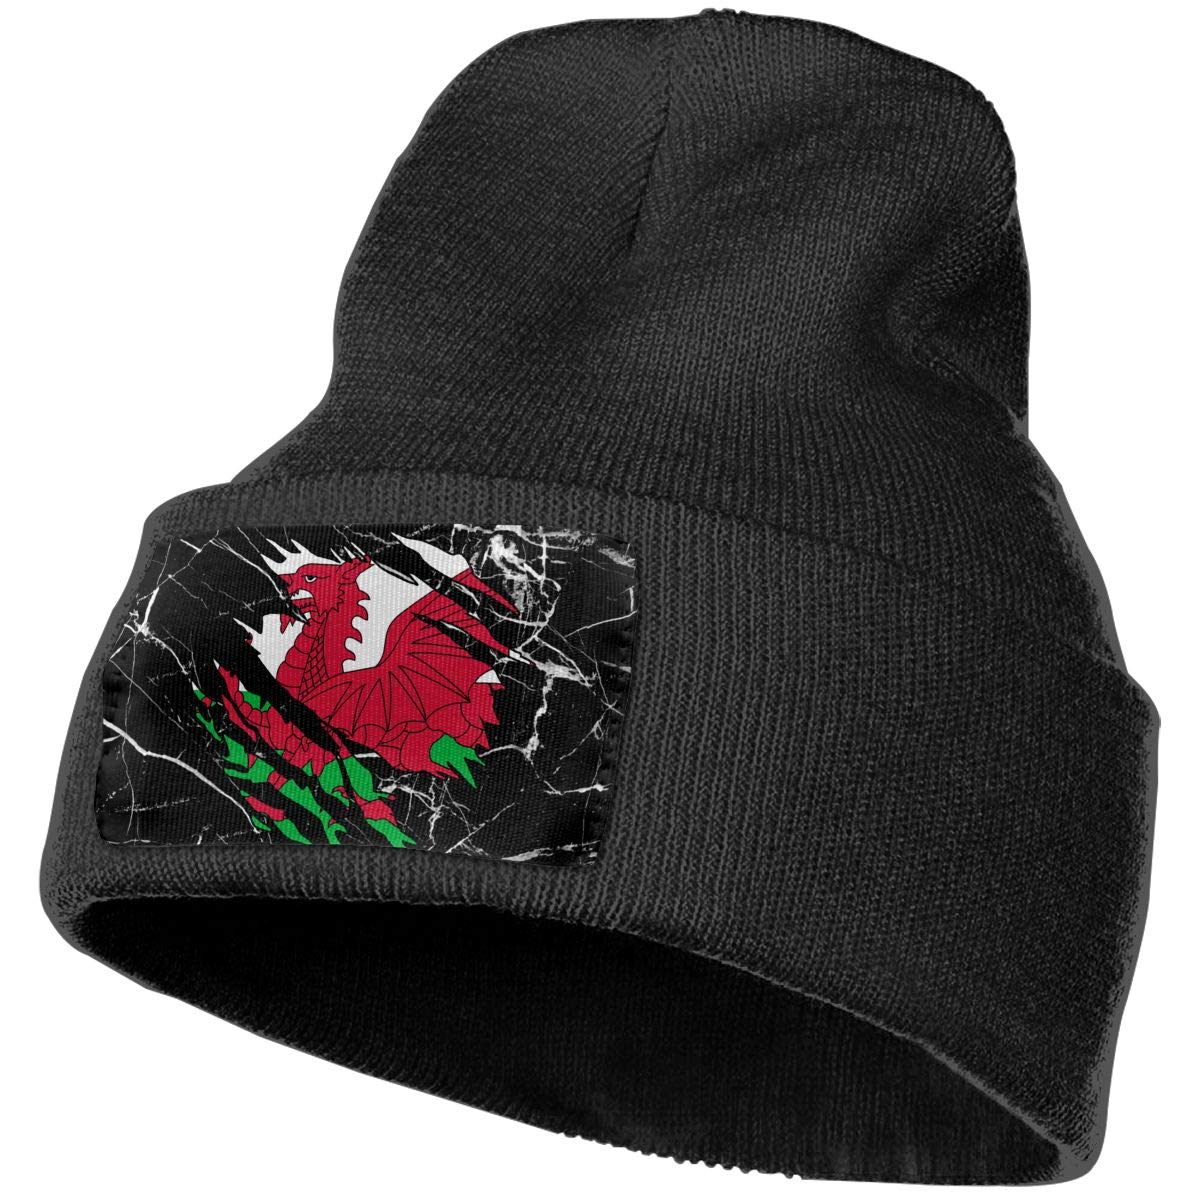 Stretchy /& Soft Winter Ski Skull Cap Ripped Welsh Flag Men Womens Solid Color Knit Beanie Hat